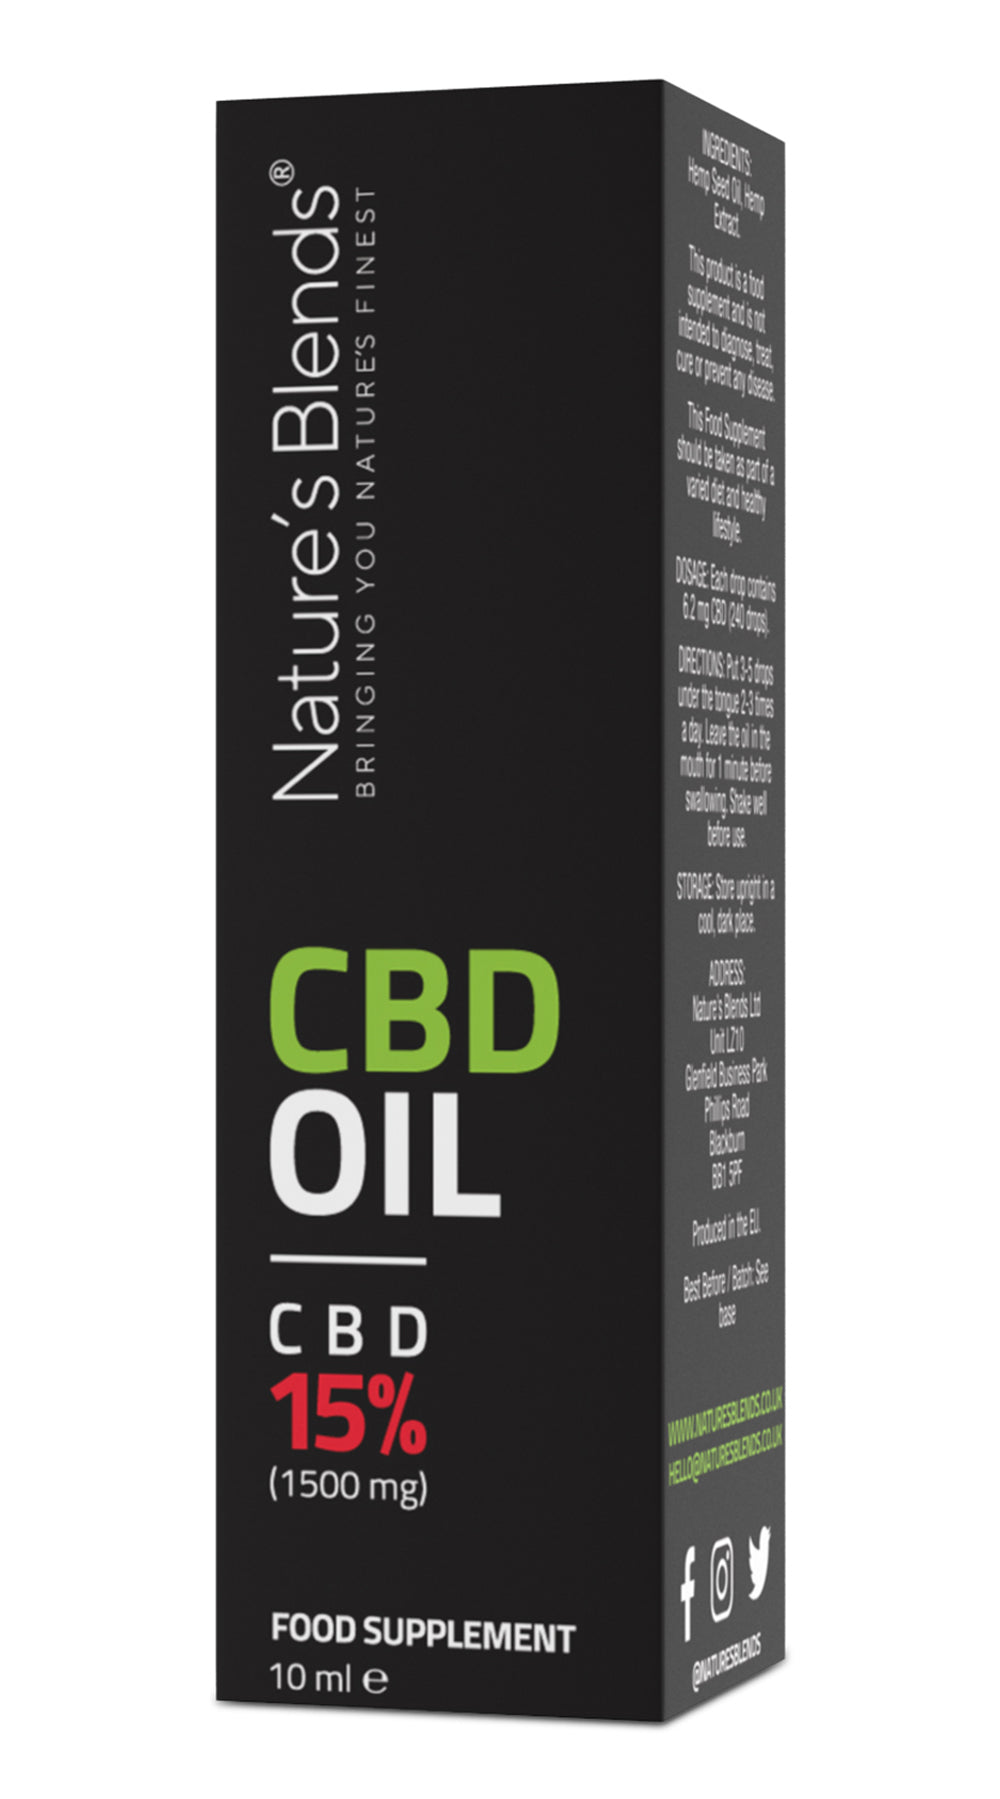 1500mg cbd oil packaging by natures blends